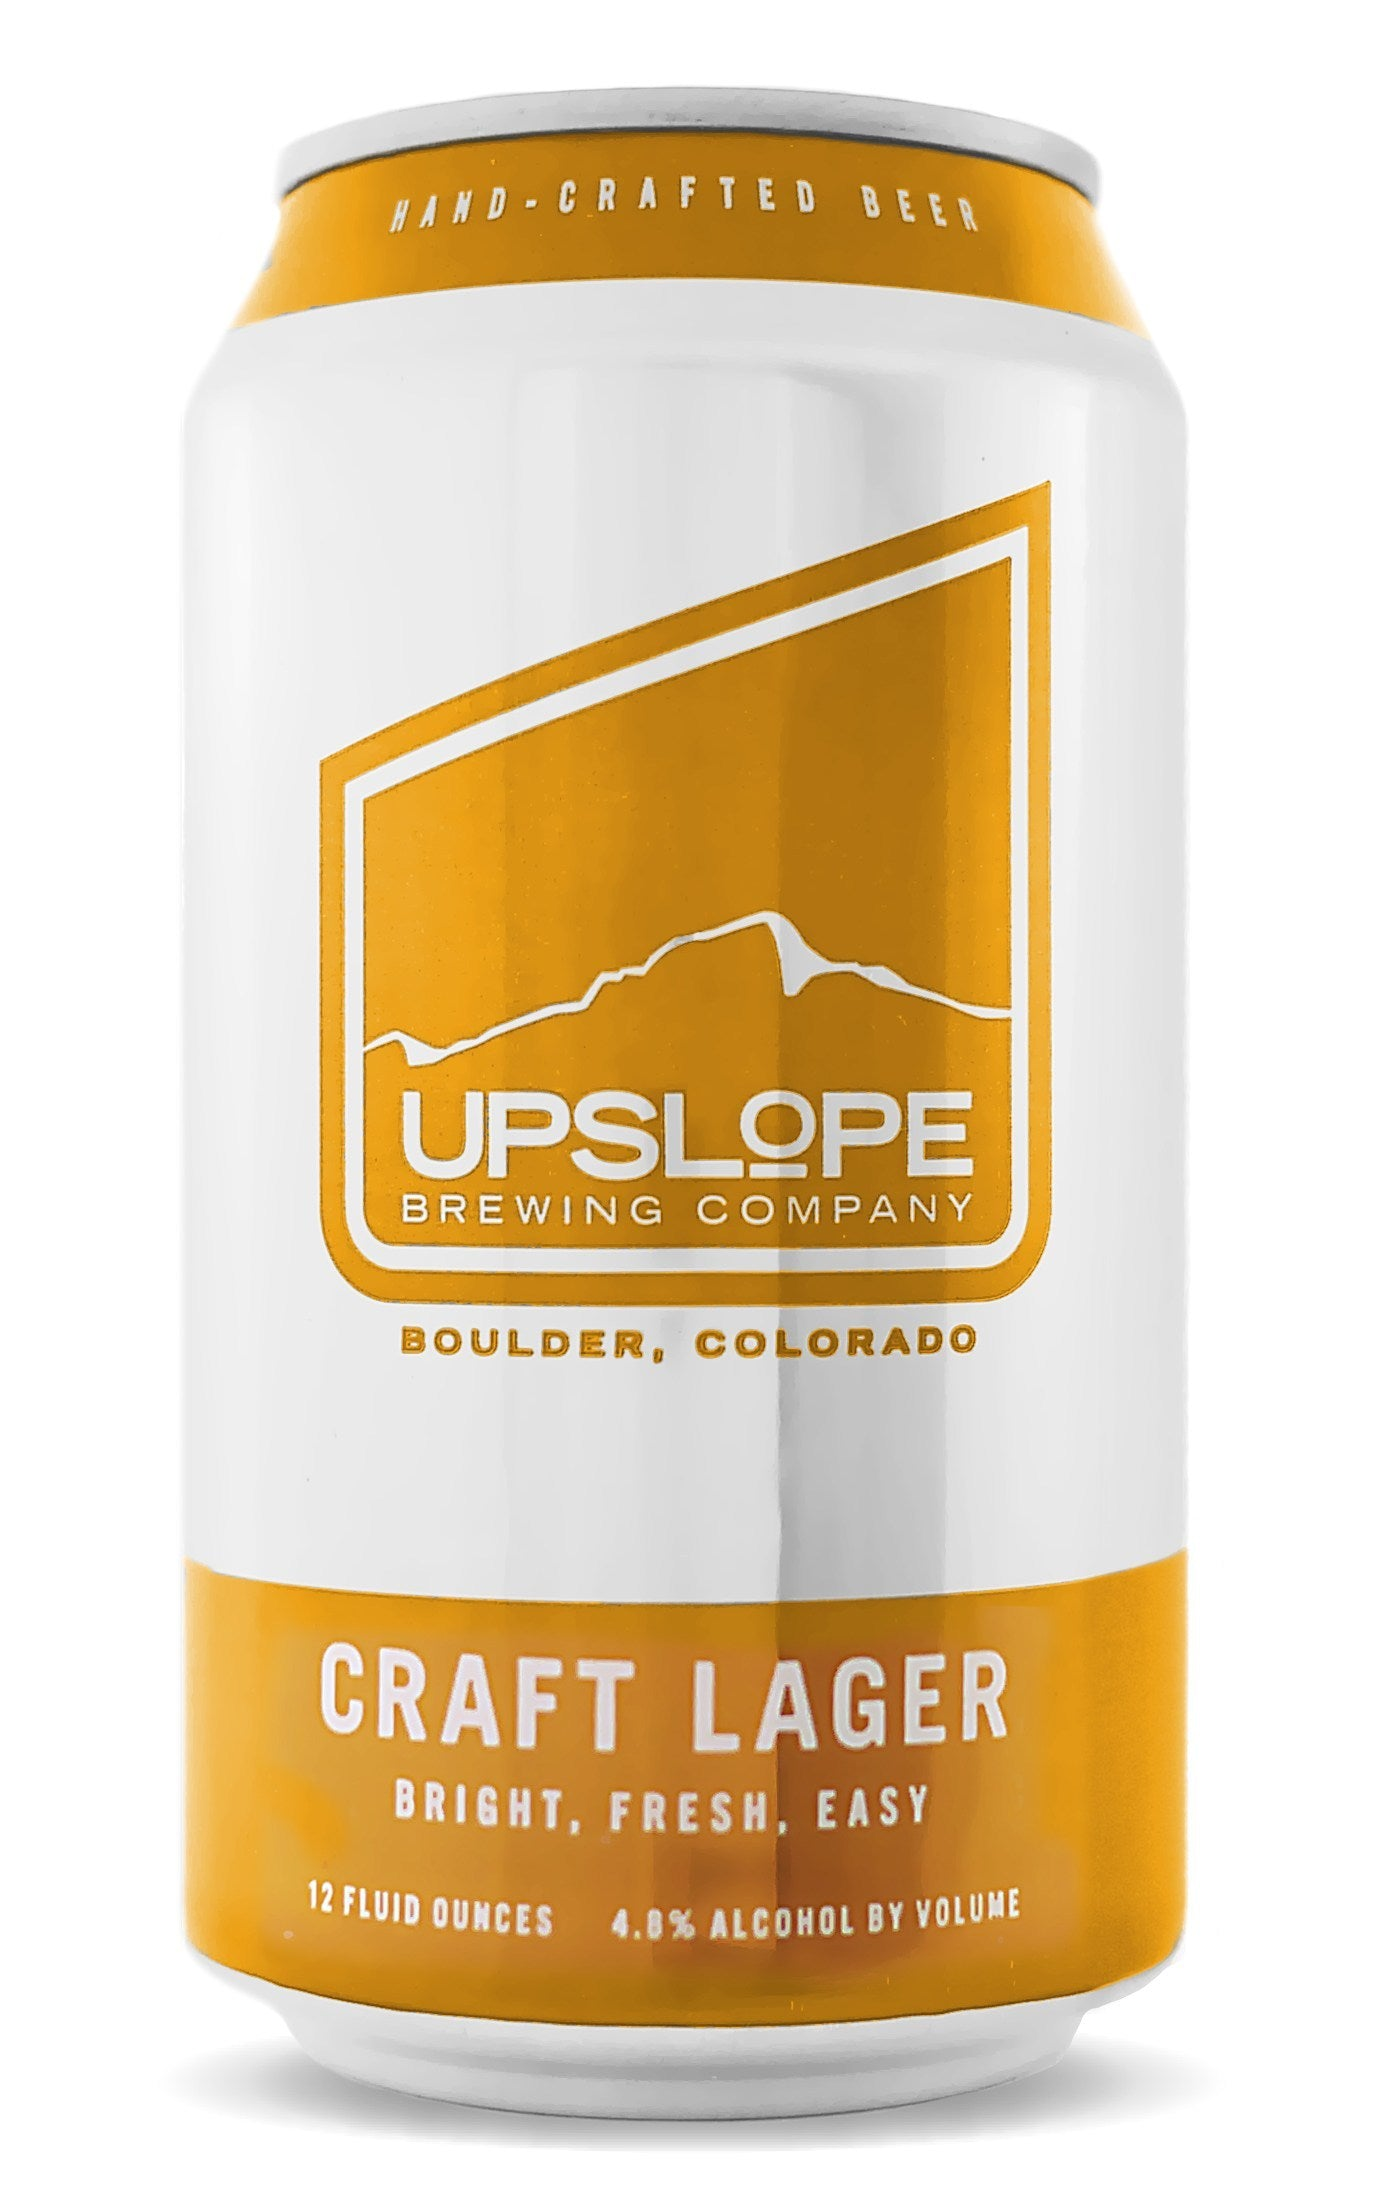 Upslope Craft Lager (6 pack cans)